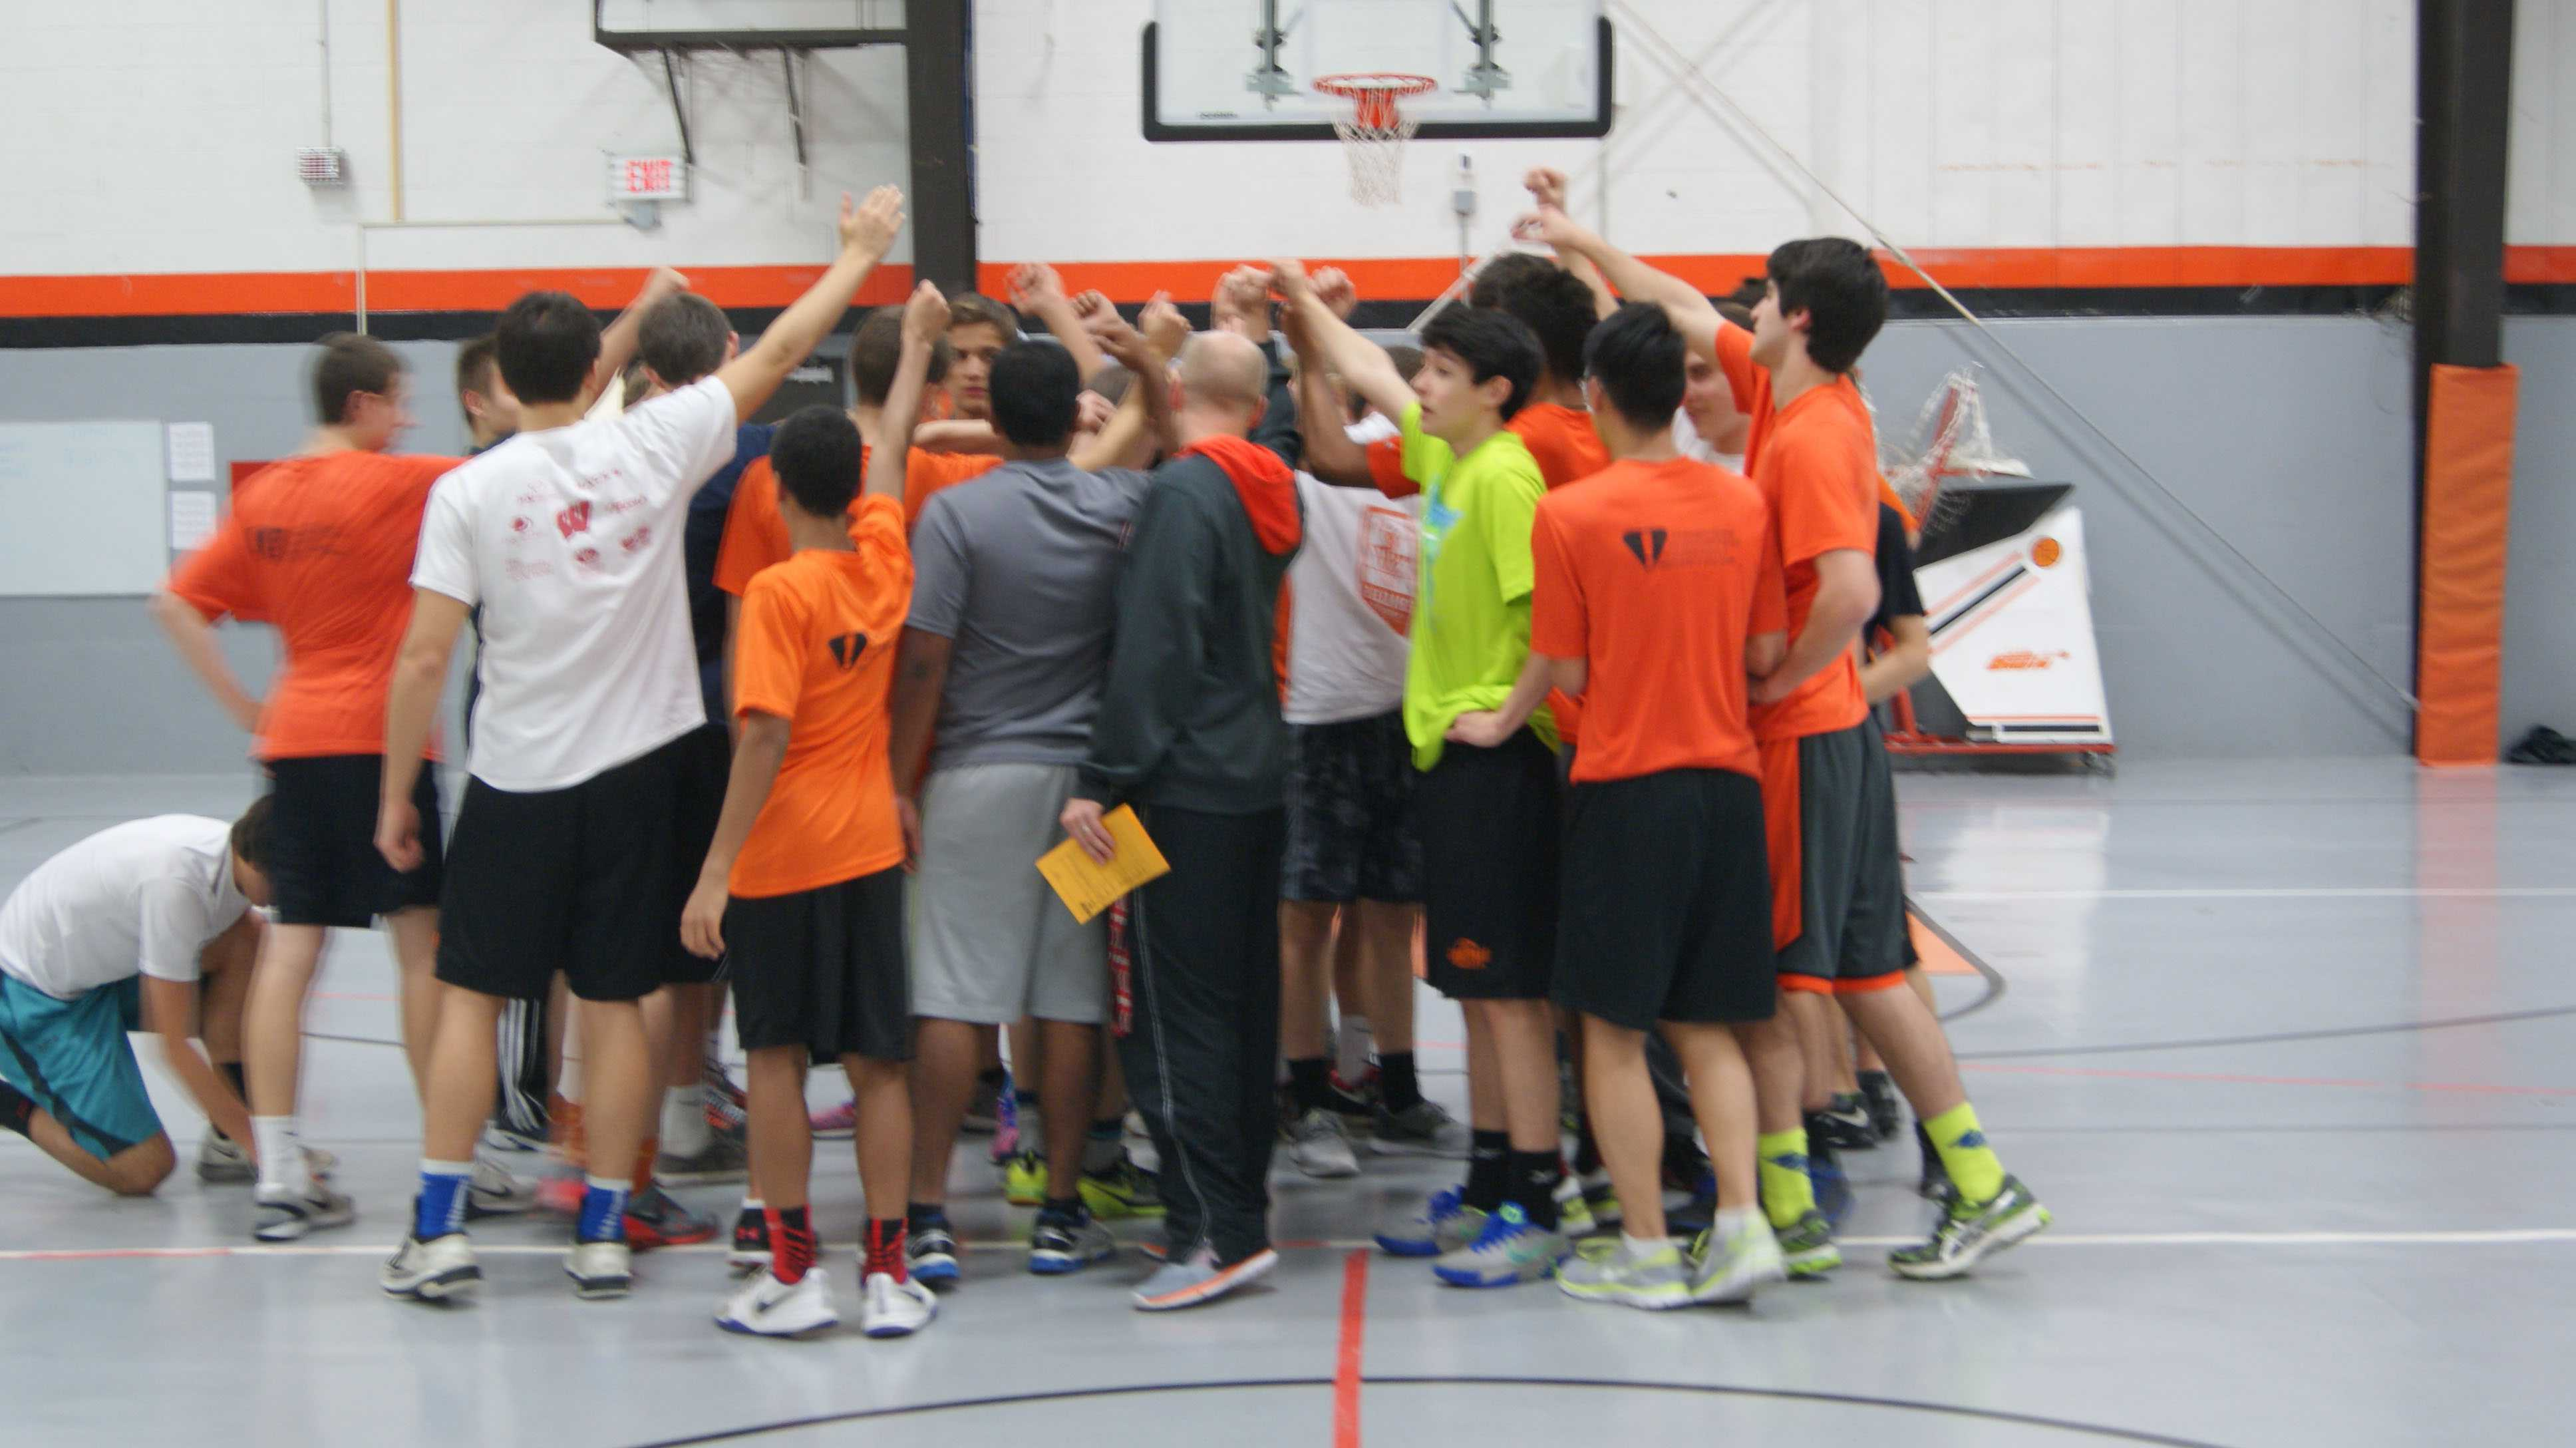 A group of players gather with the coaches and discuss what they can expect from this practice.